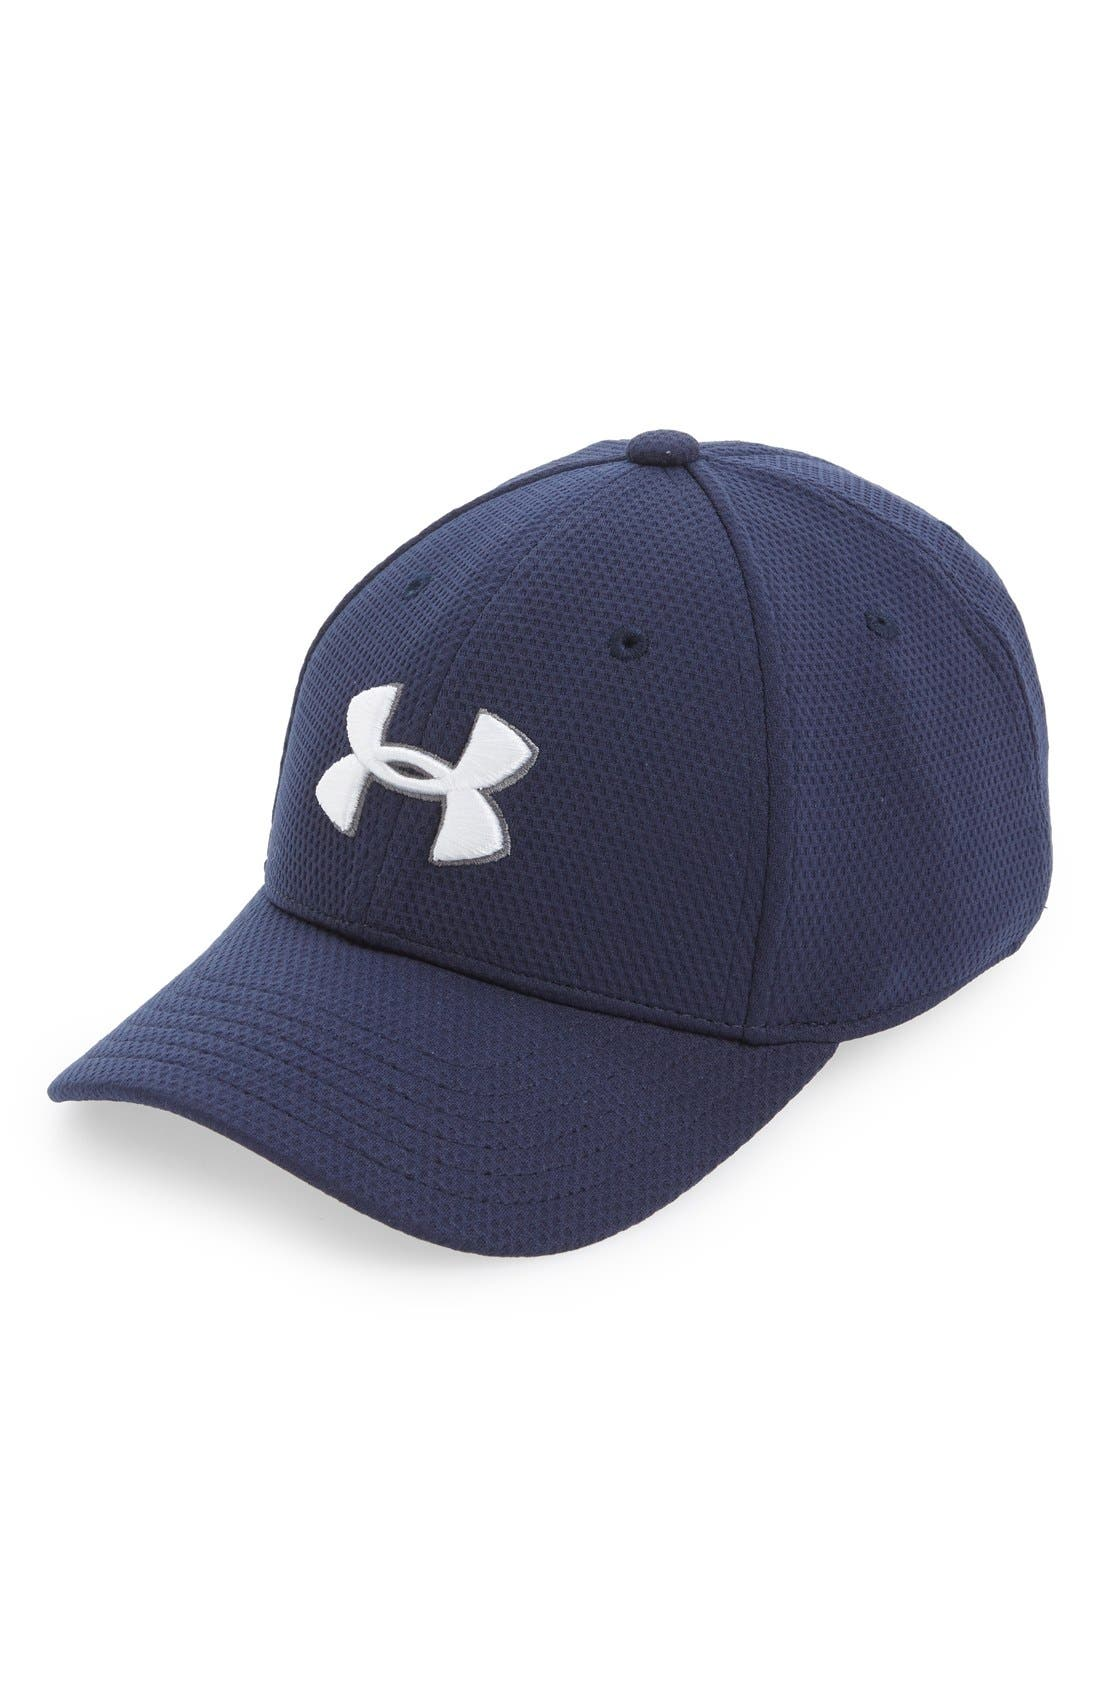 UNDER ARMOUR Blitzing 2.0 Stretch Fit Baseball Cap